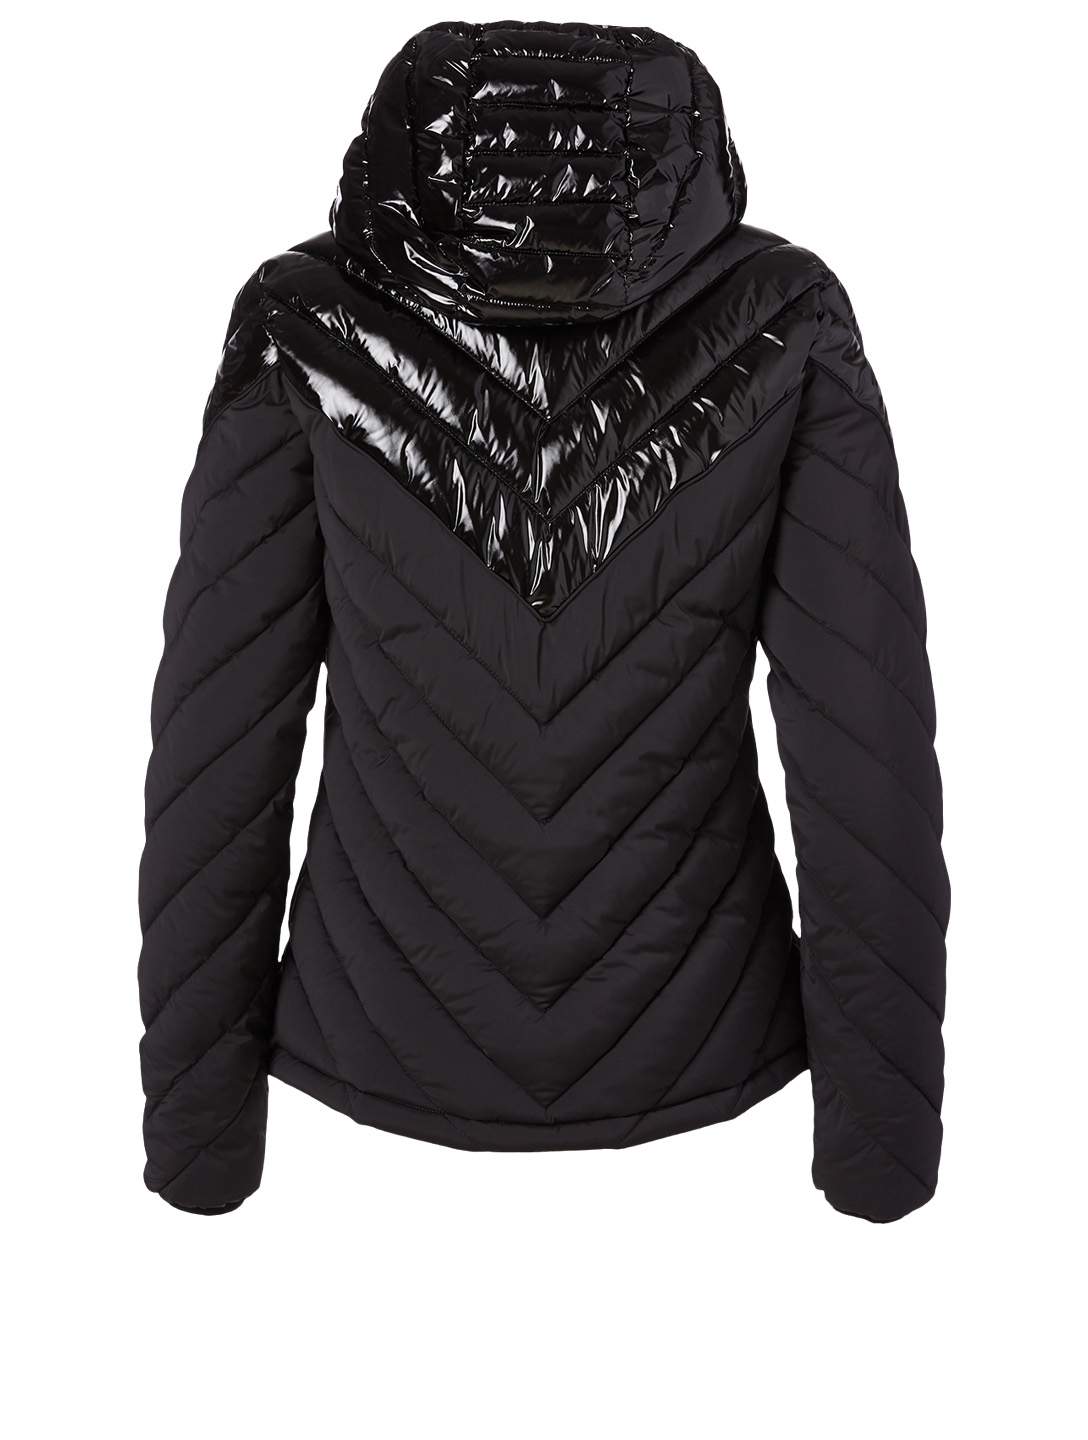 MOOSE KNUCKLES Exhibition Puffer Jacket Women's Black